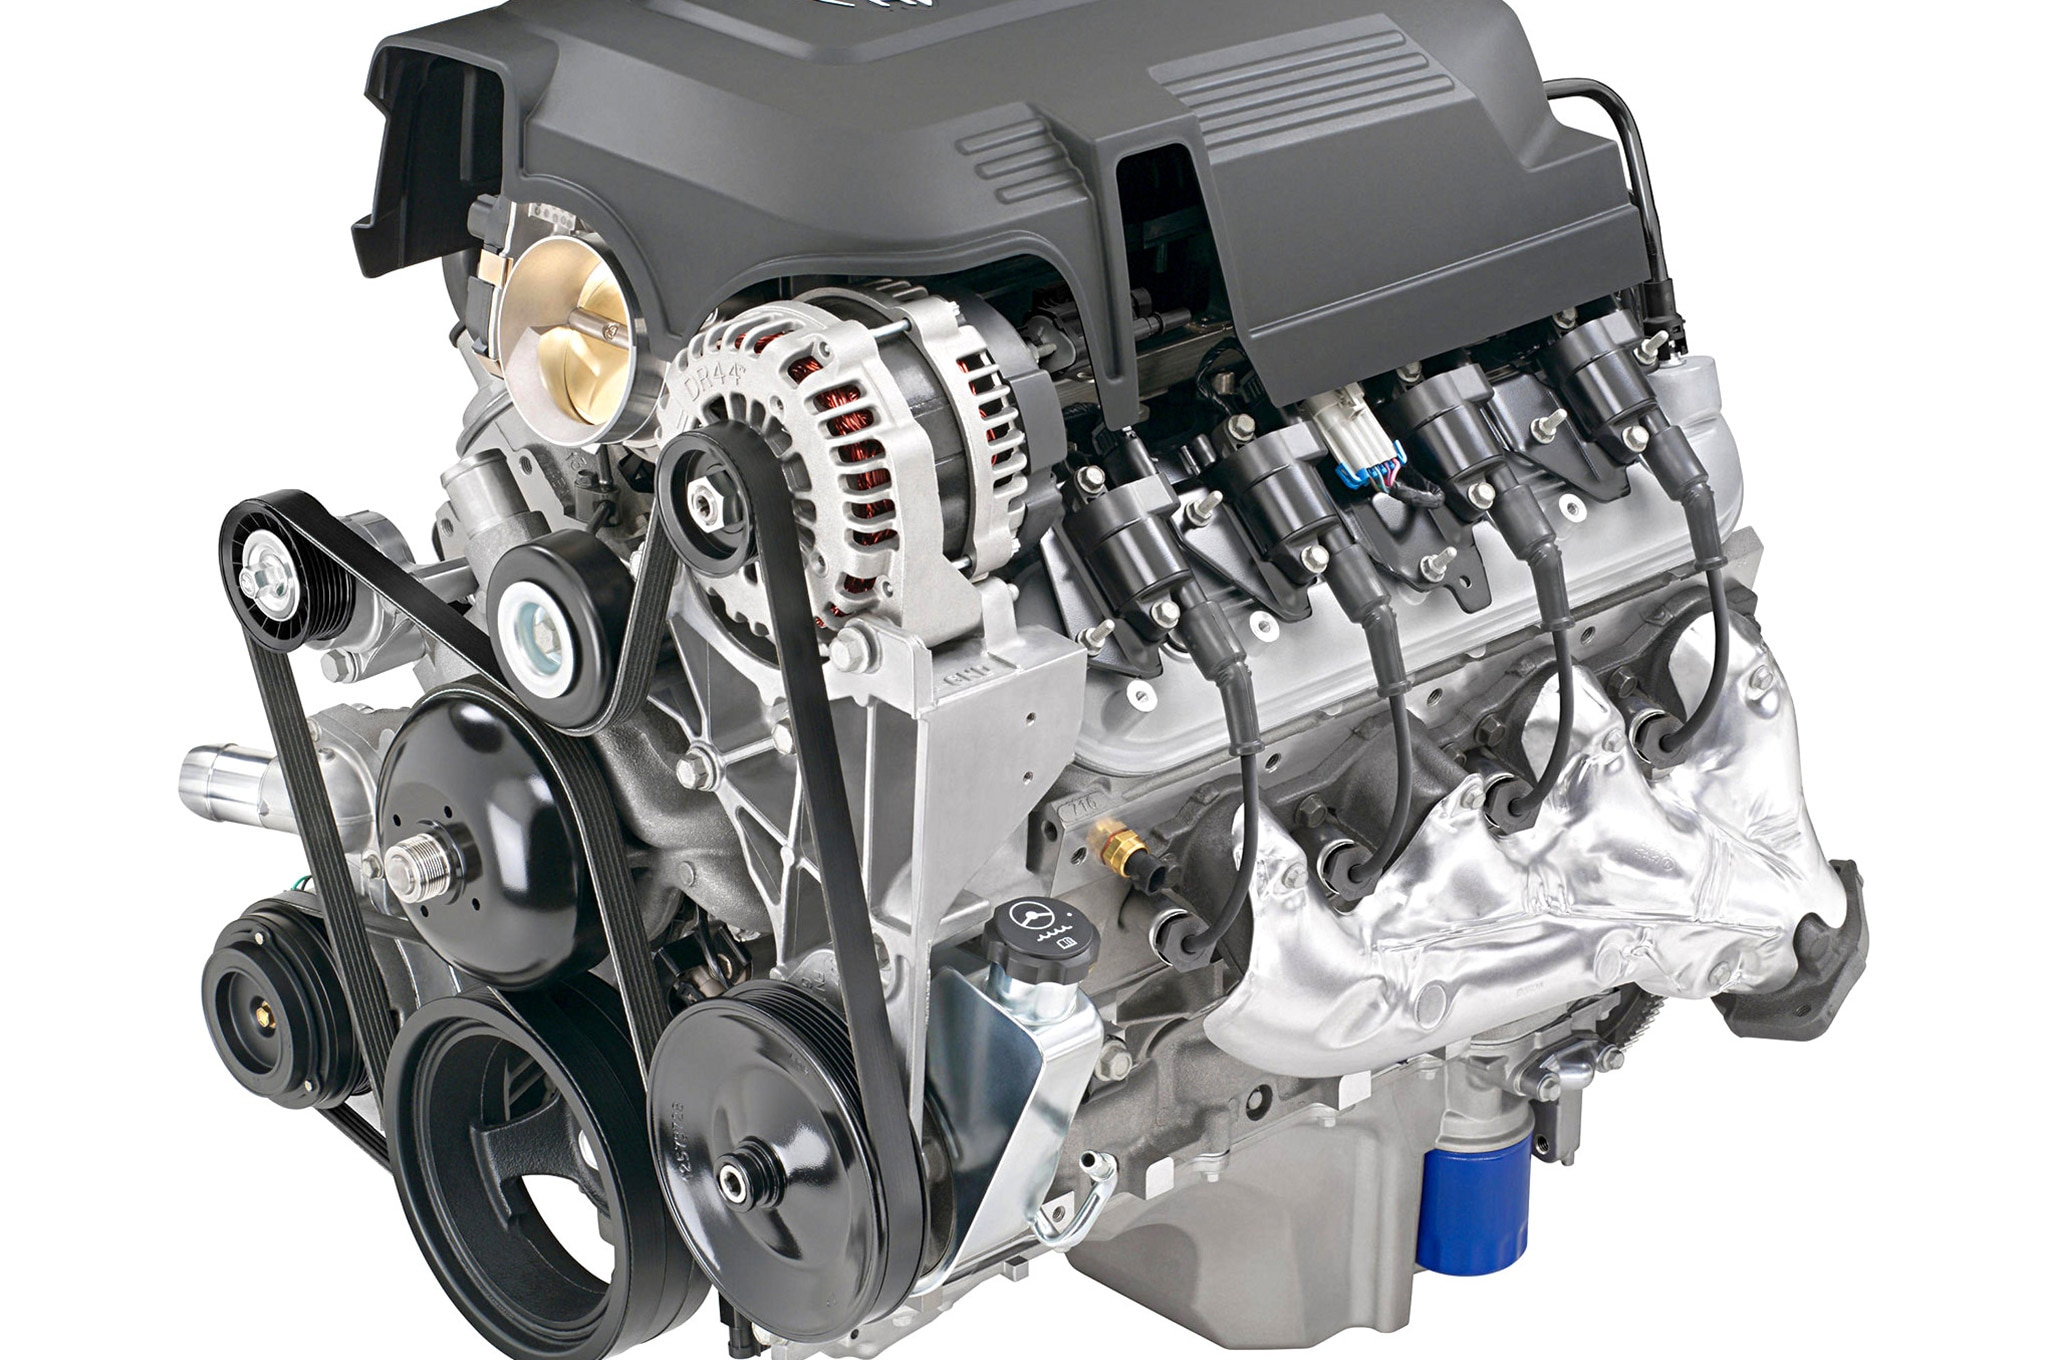 manual trasnsmission would fit an ls1